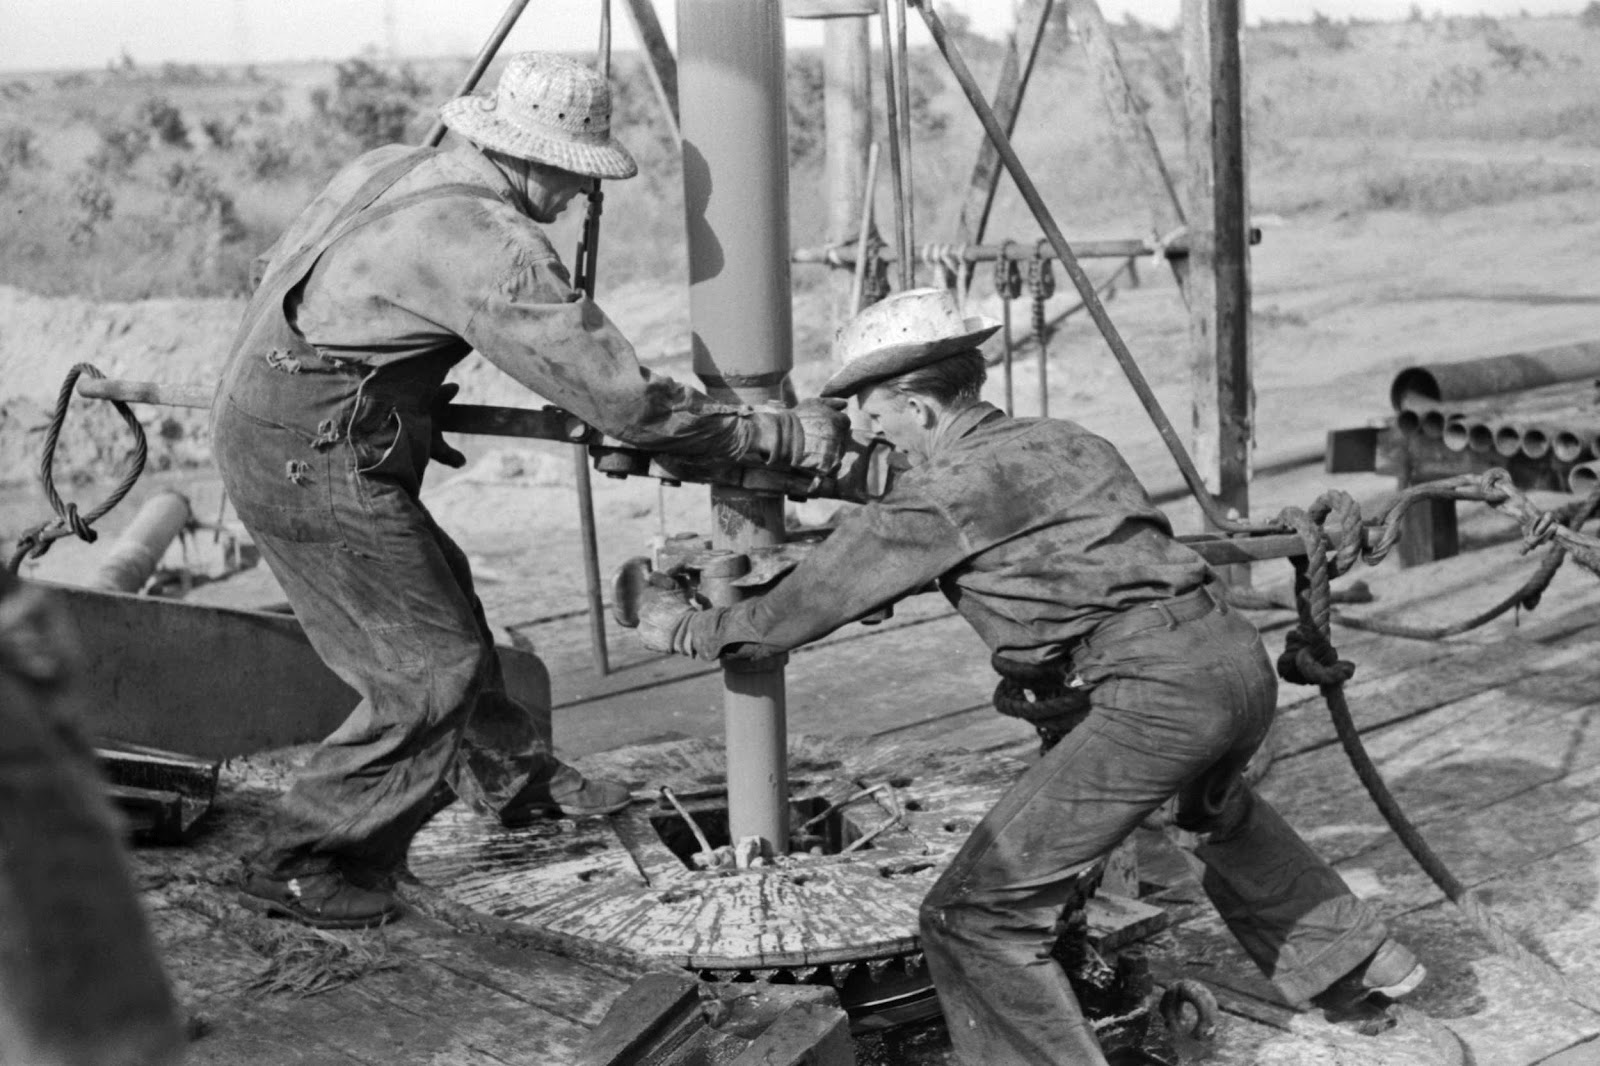 Russell Lee - Adding a length of drilling pipe at oil well in Seminole oil field, Oklahoma. Wrenches applied to loosen pipe, 1939